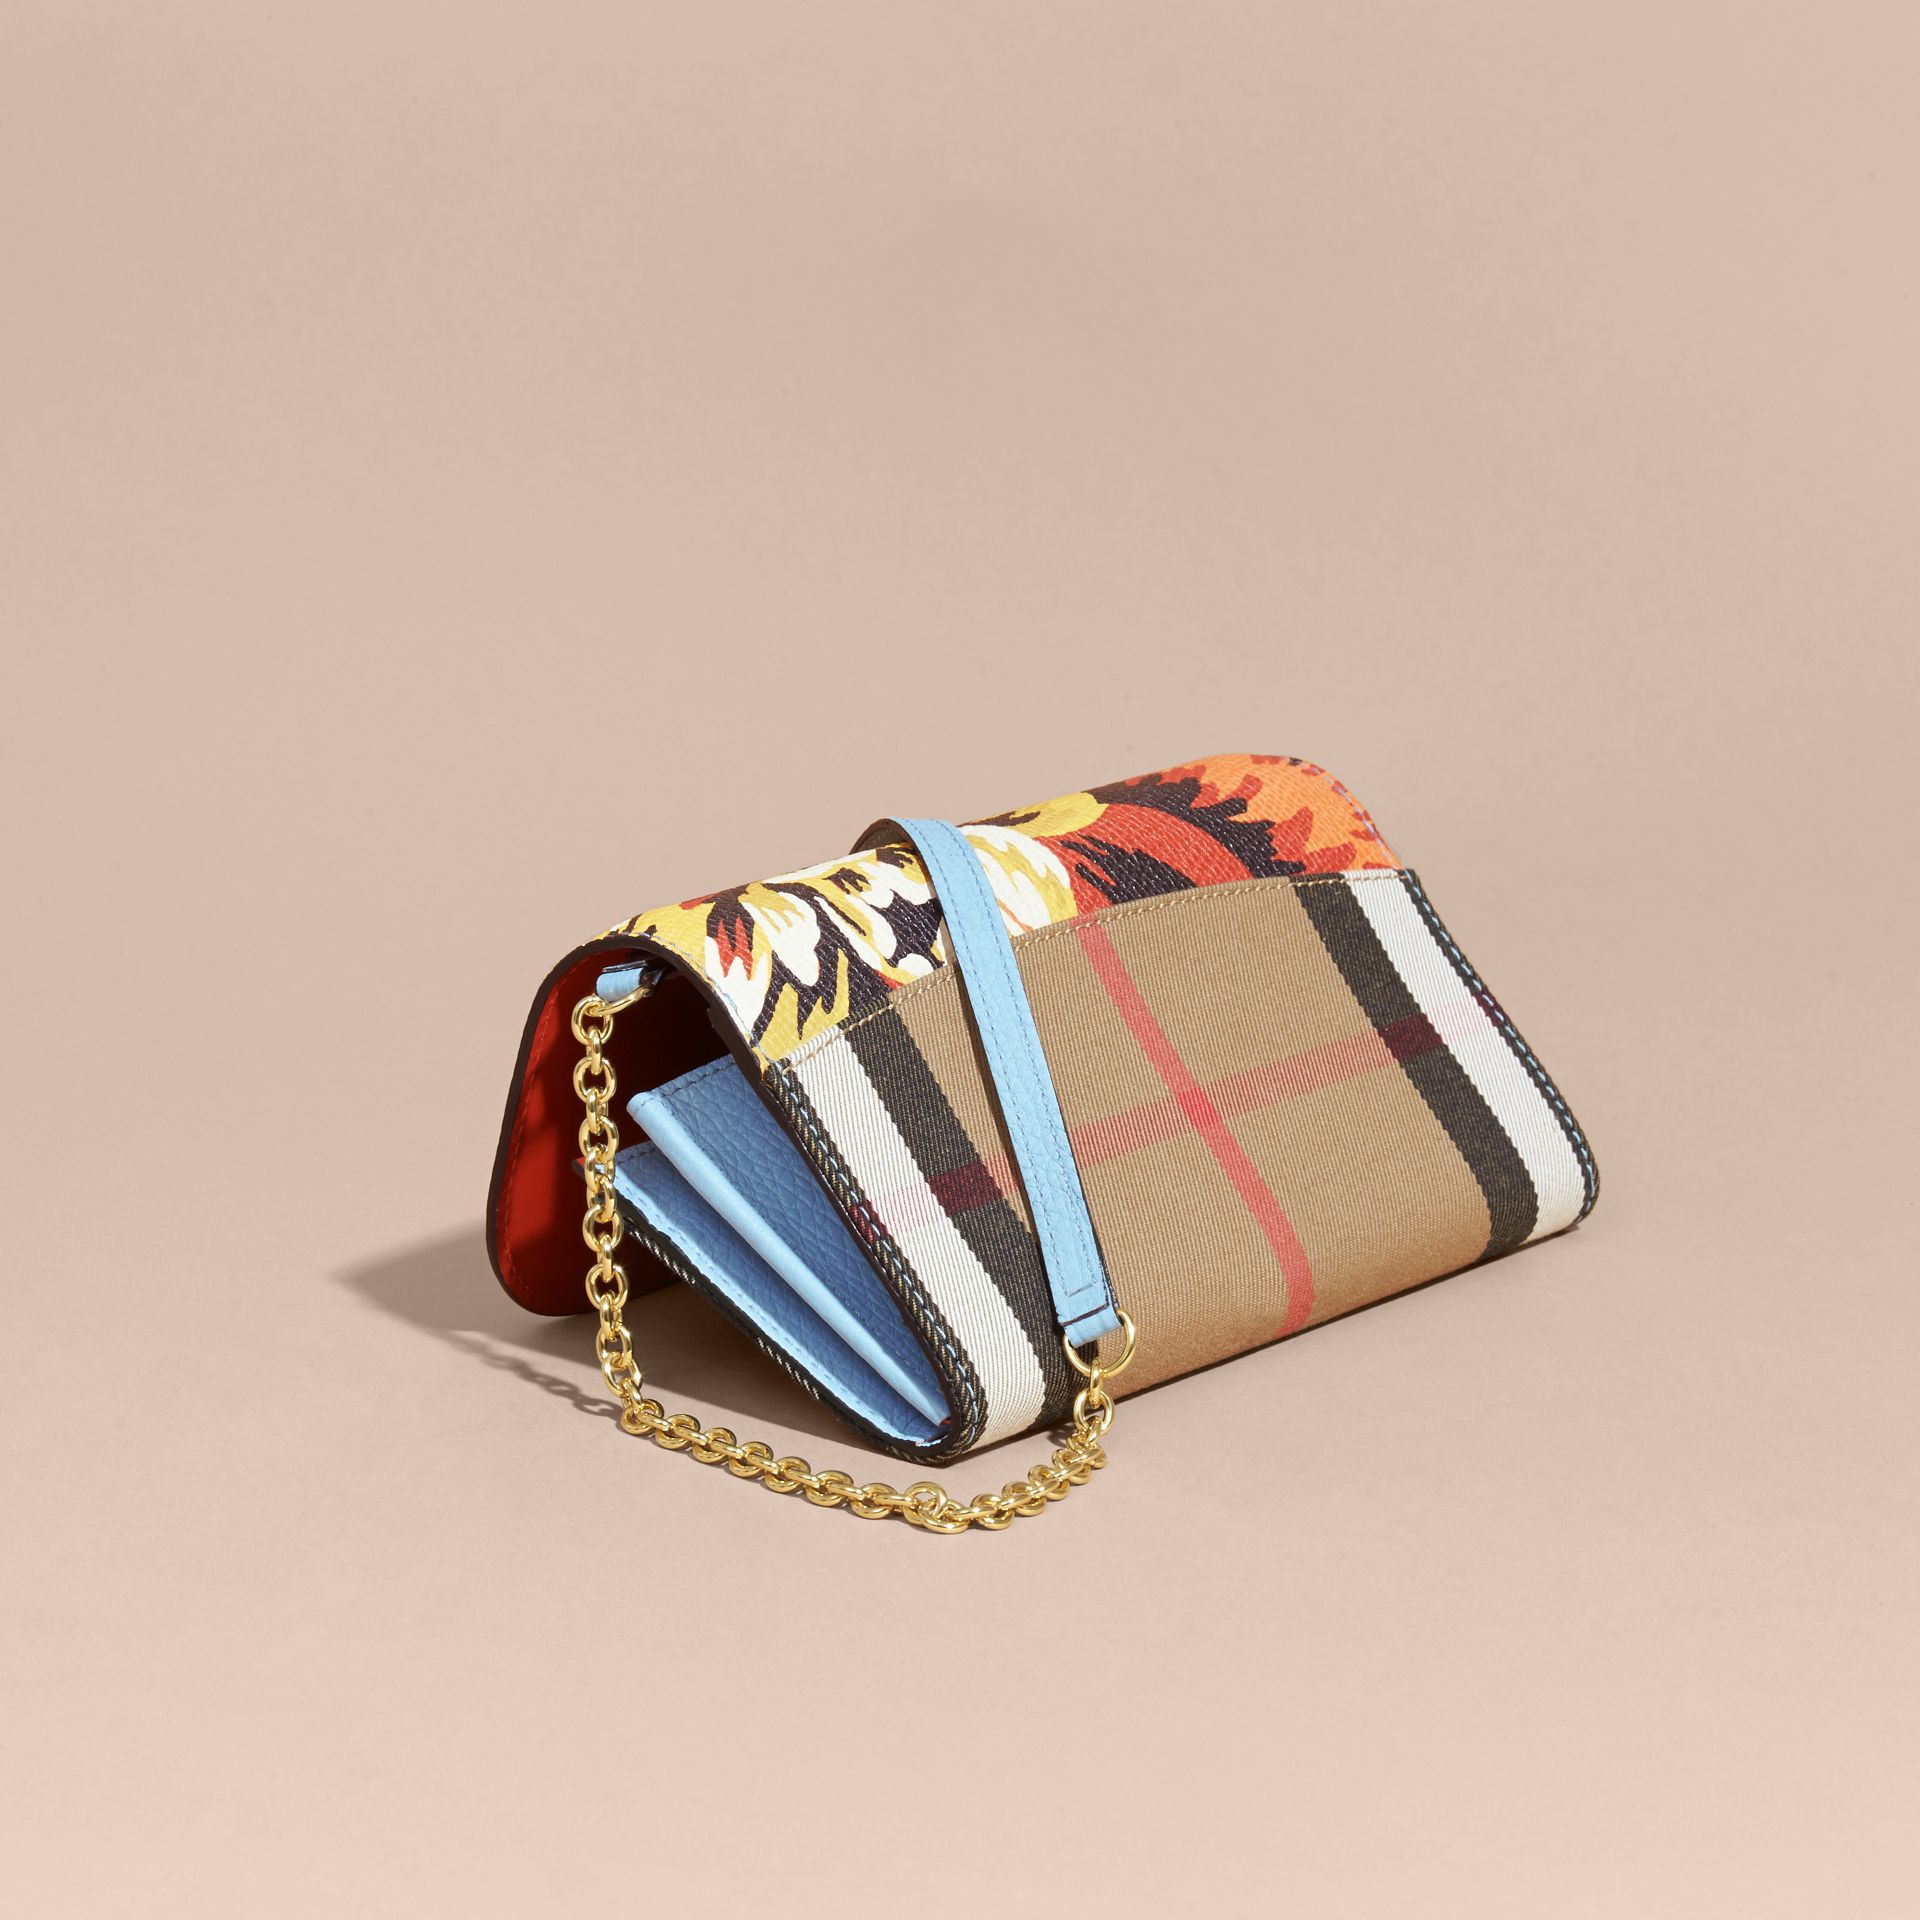 House Check and Peony Rose Print Wallet with Chain in Pale Blue/vibrant Orange - gallery image 4